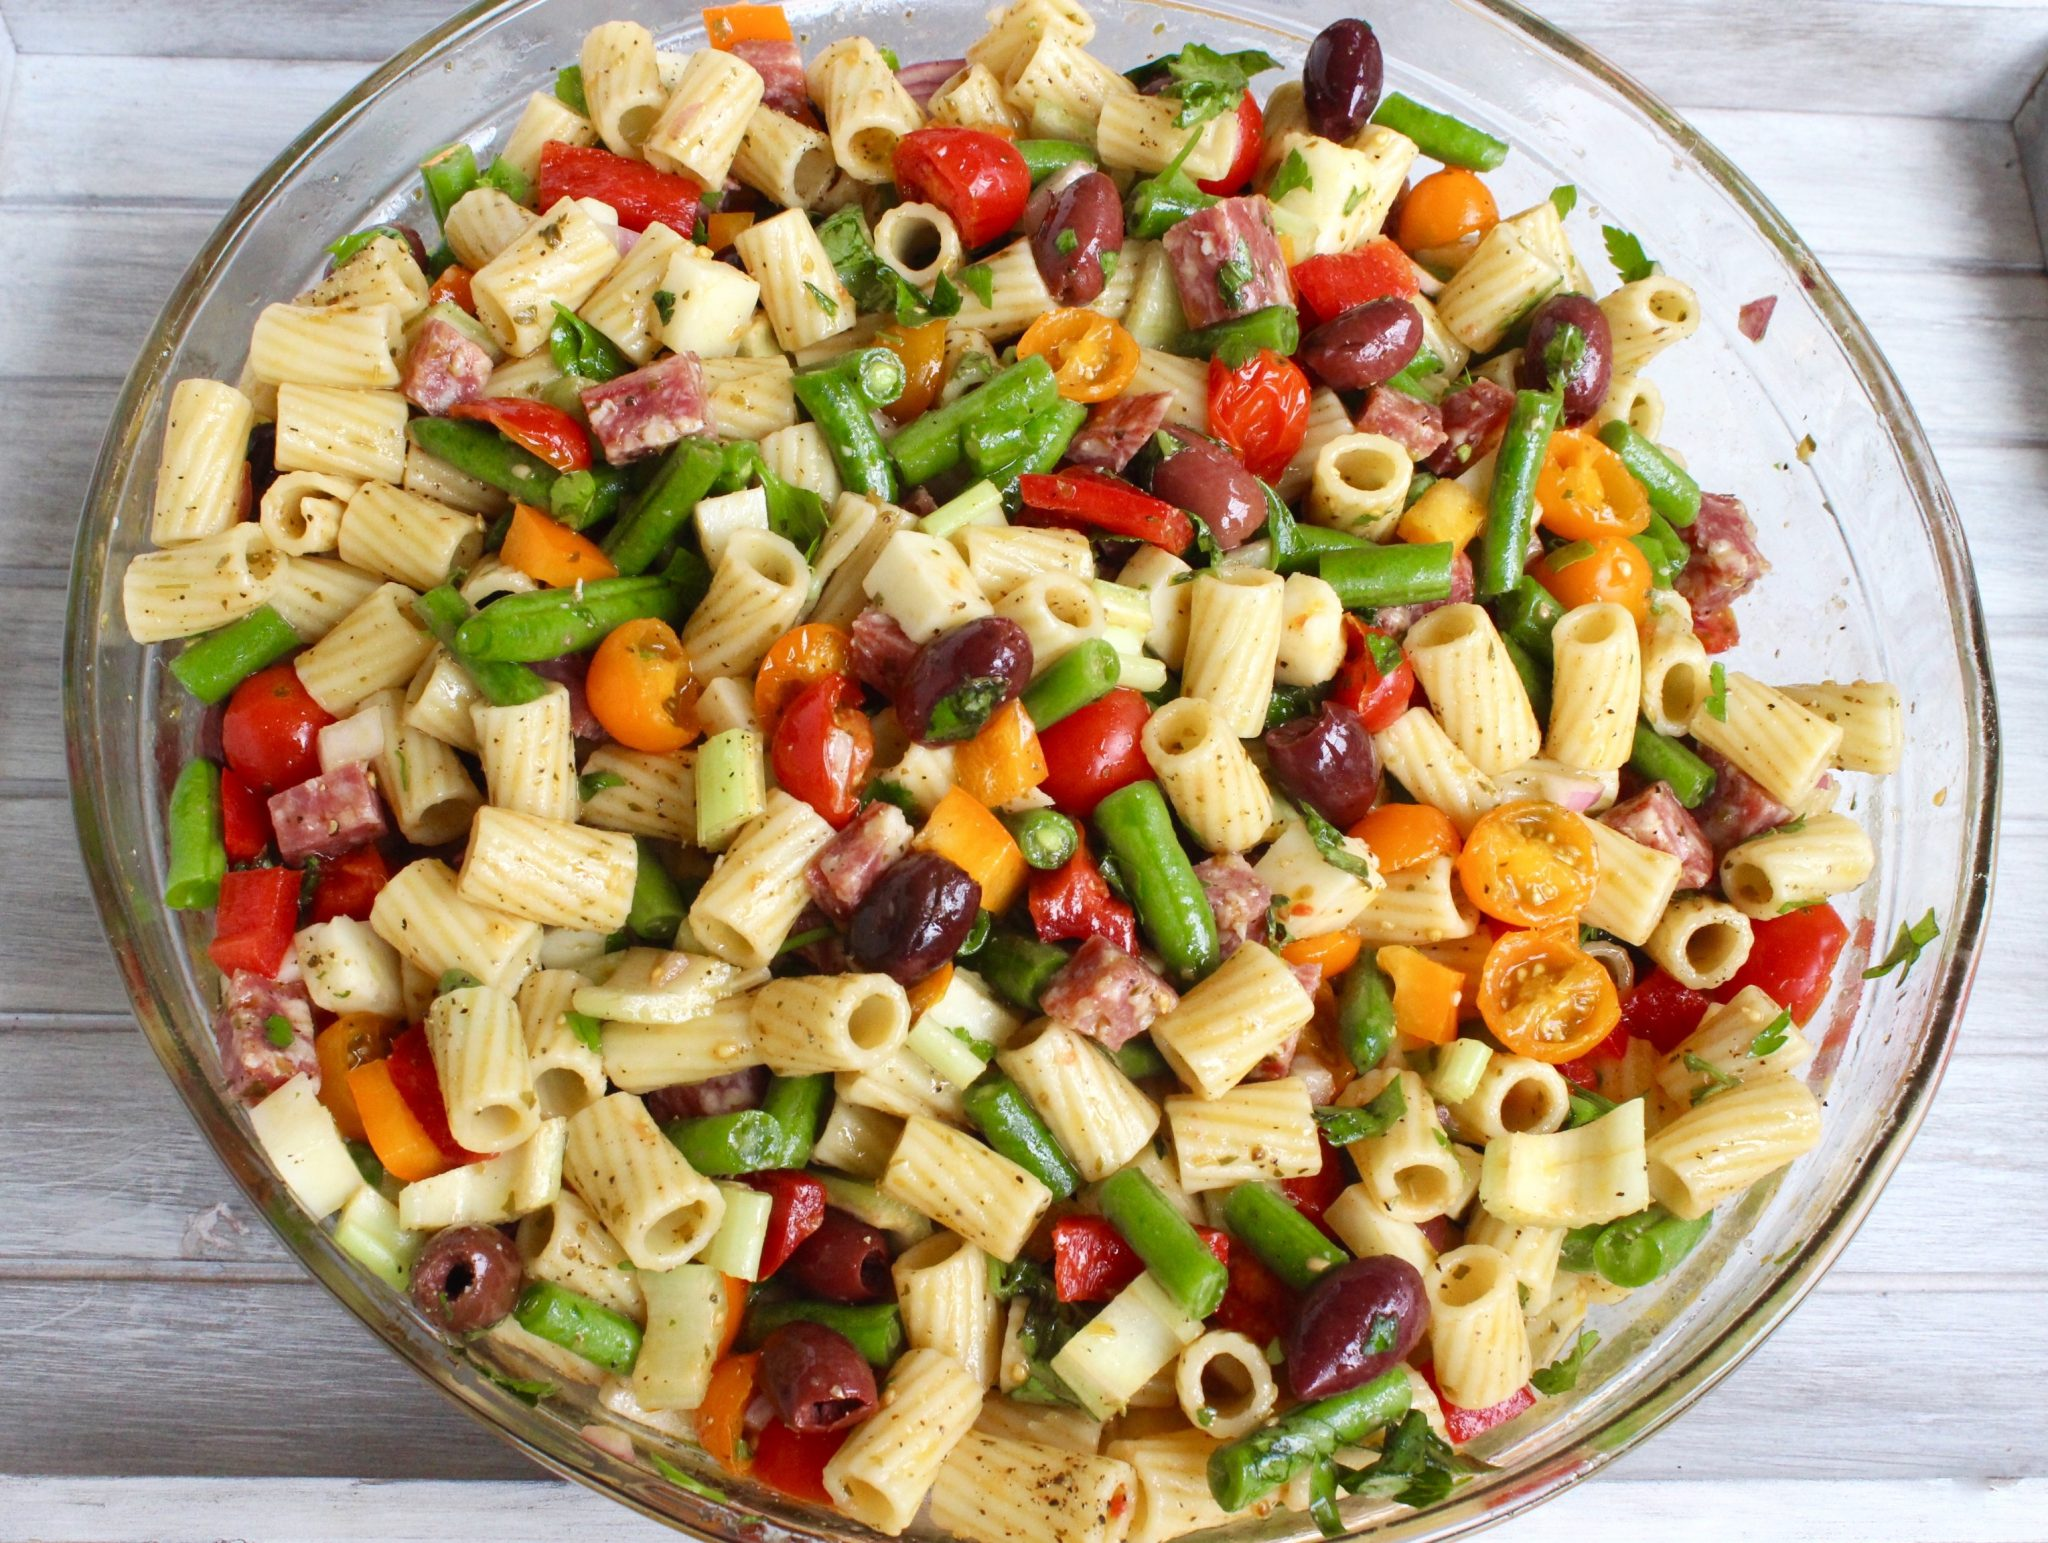 Pasta Salad Is A Great Family Party Dish This Recipe Uses A Red Wine Vinegar And Olive Oil Dressing And Therefore Will Keep Well On A Buffet Table Or